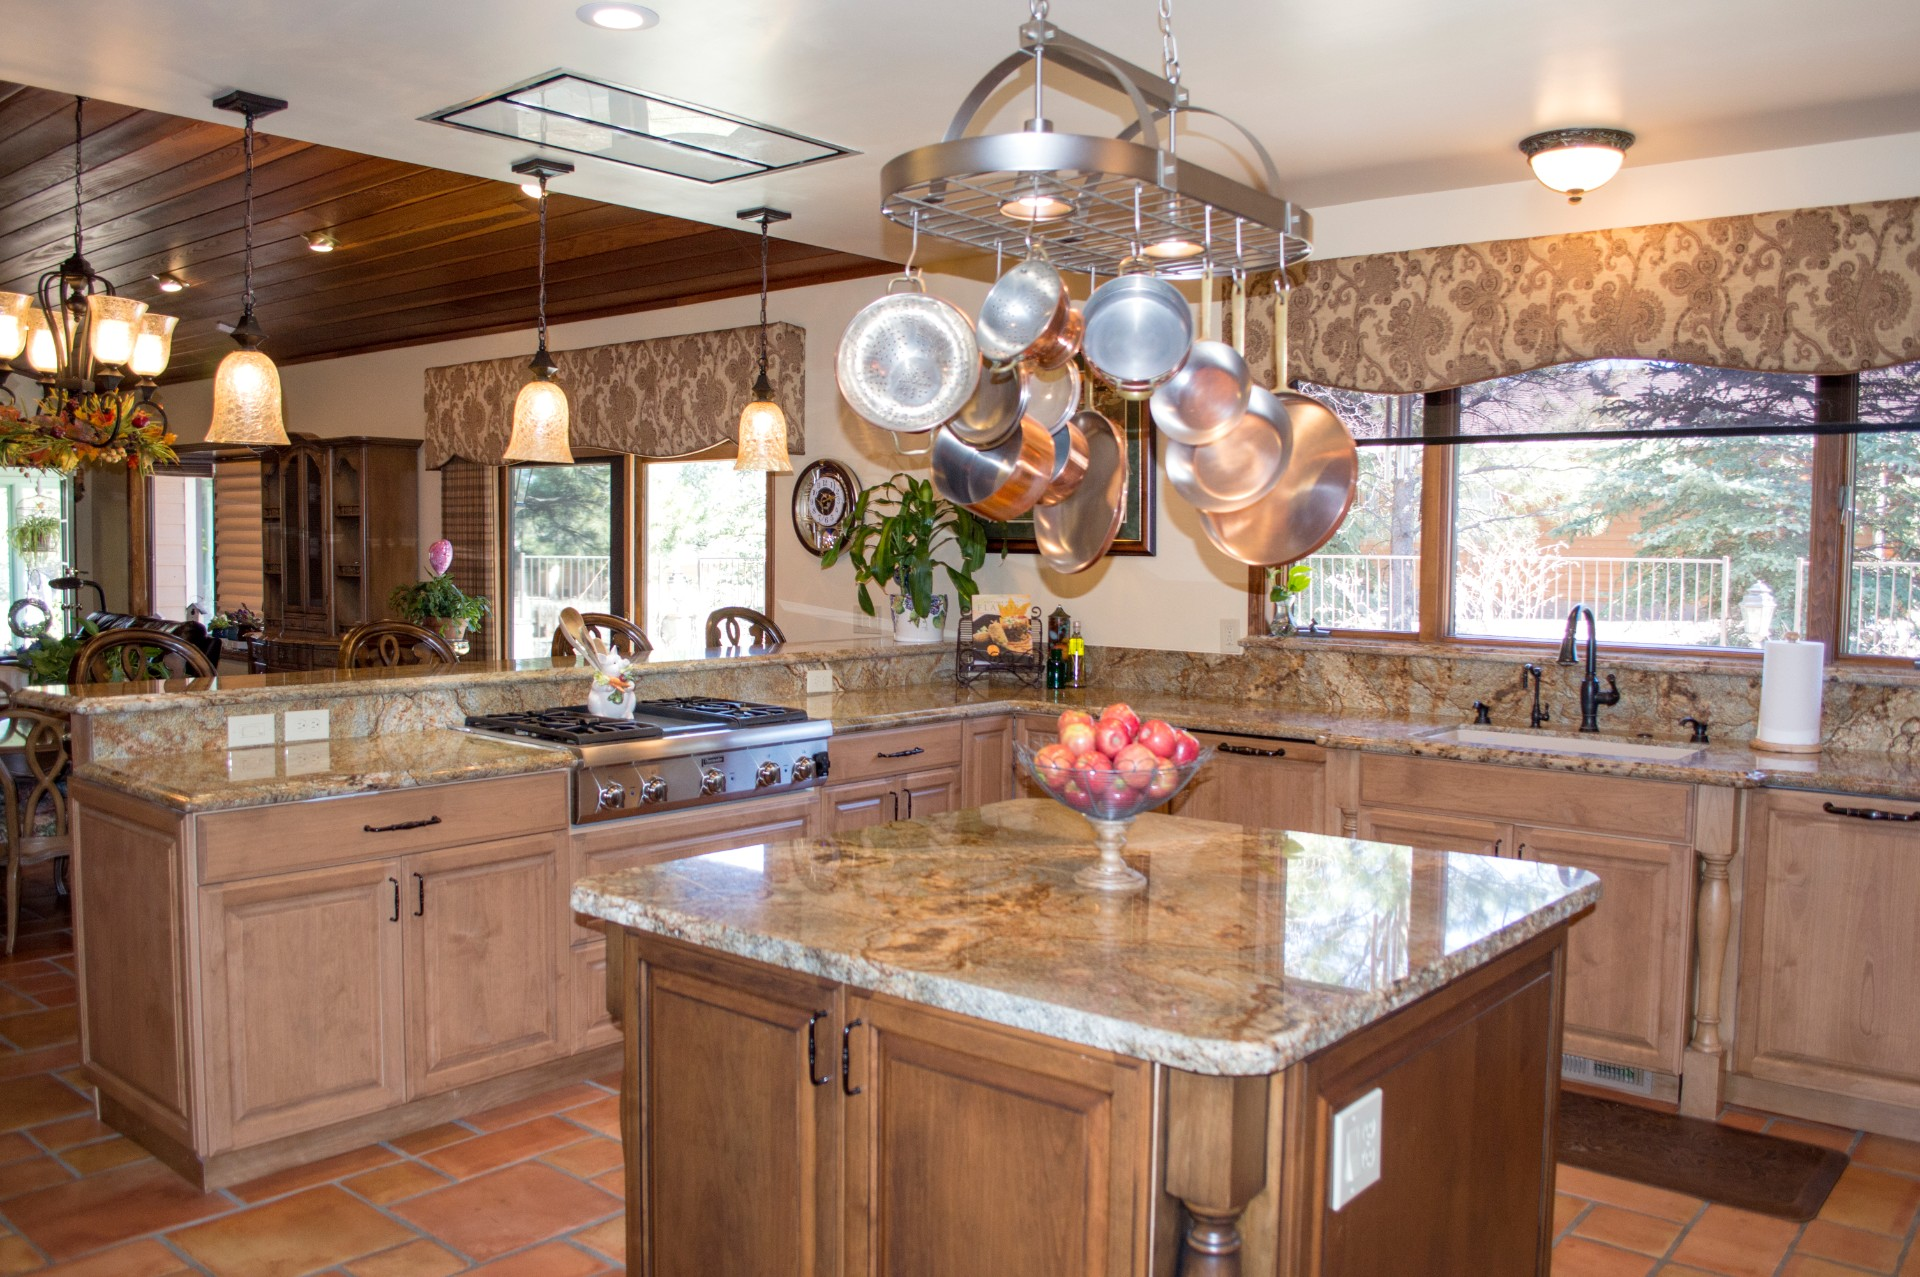 Completed remodeled kitchen in a custom home.